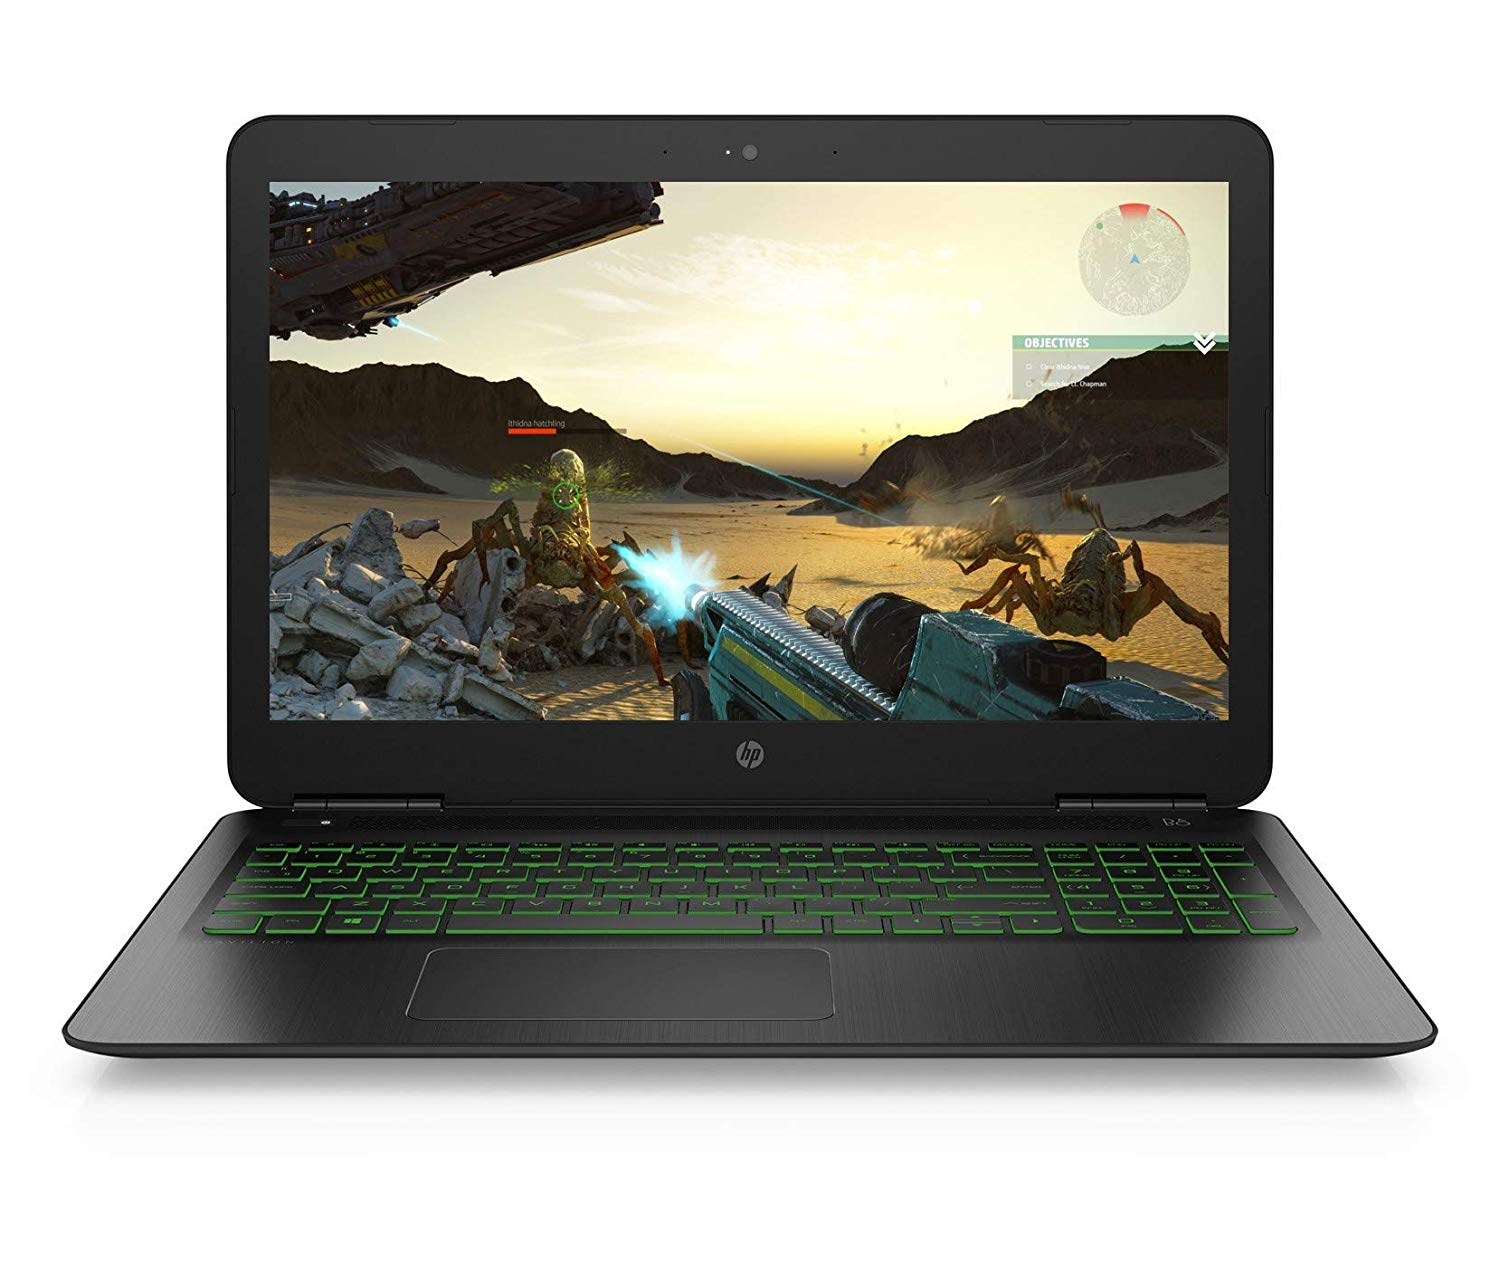 HP Pavilion Gaming Core i5 9th Gen 15.6-inch FHD Gaming Laptop